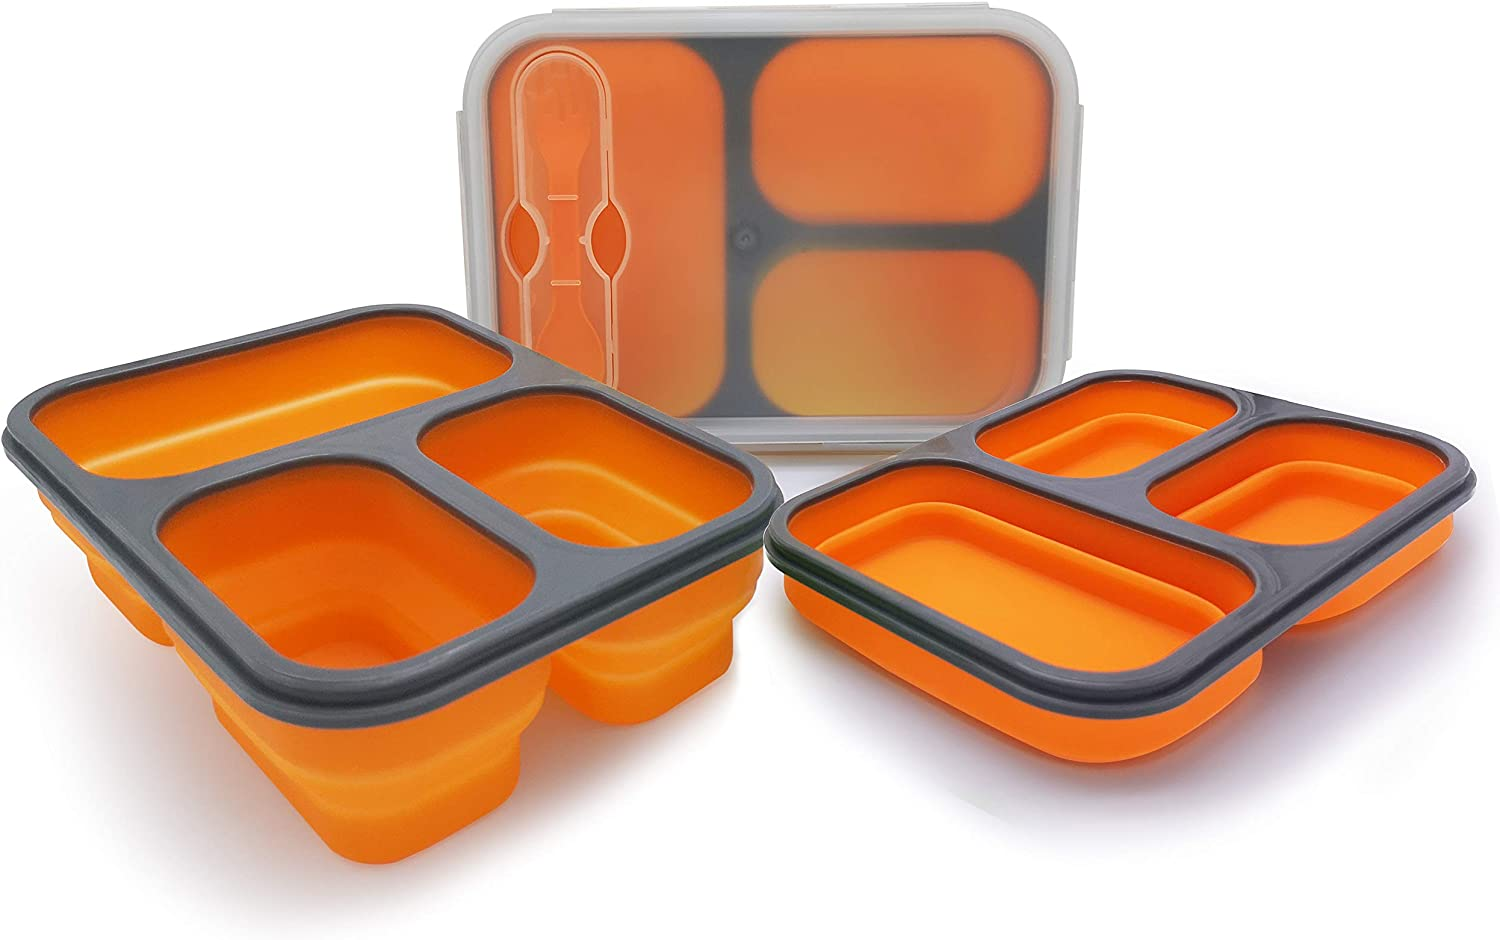 Exclusivo Bolsillo Bento Lunch Box for Women Men & Kids With Spoon & Fork,BPA Free,Collapsible and Leakproof Food Grade Silicone Food Storage Containers with 3 Compartments (Orange,One Container)